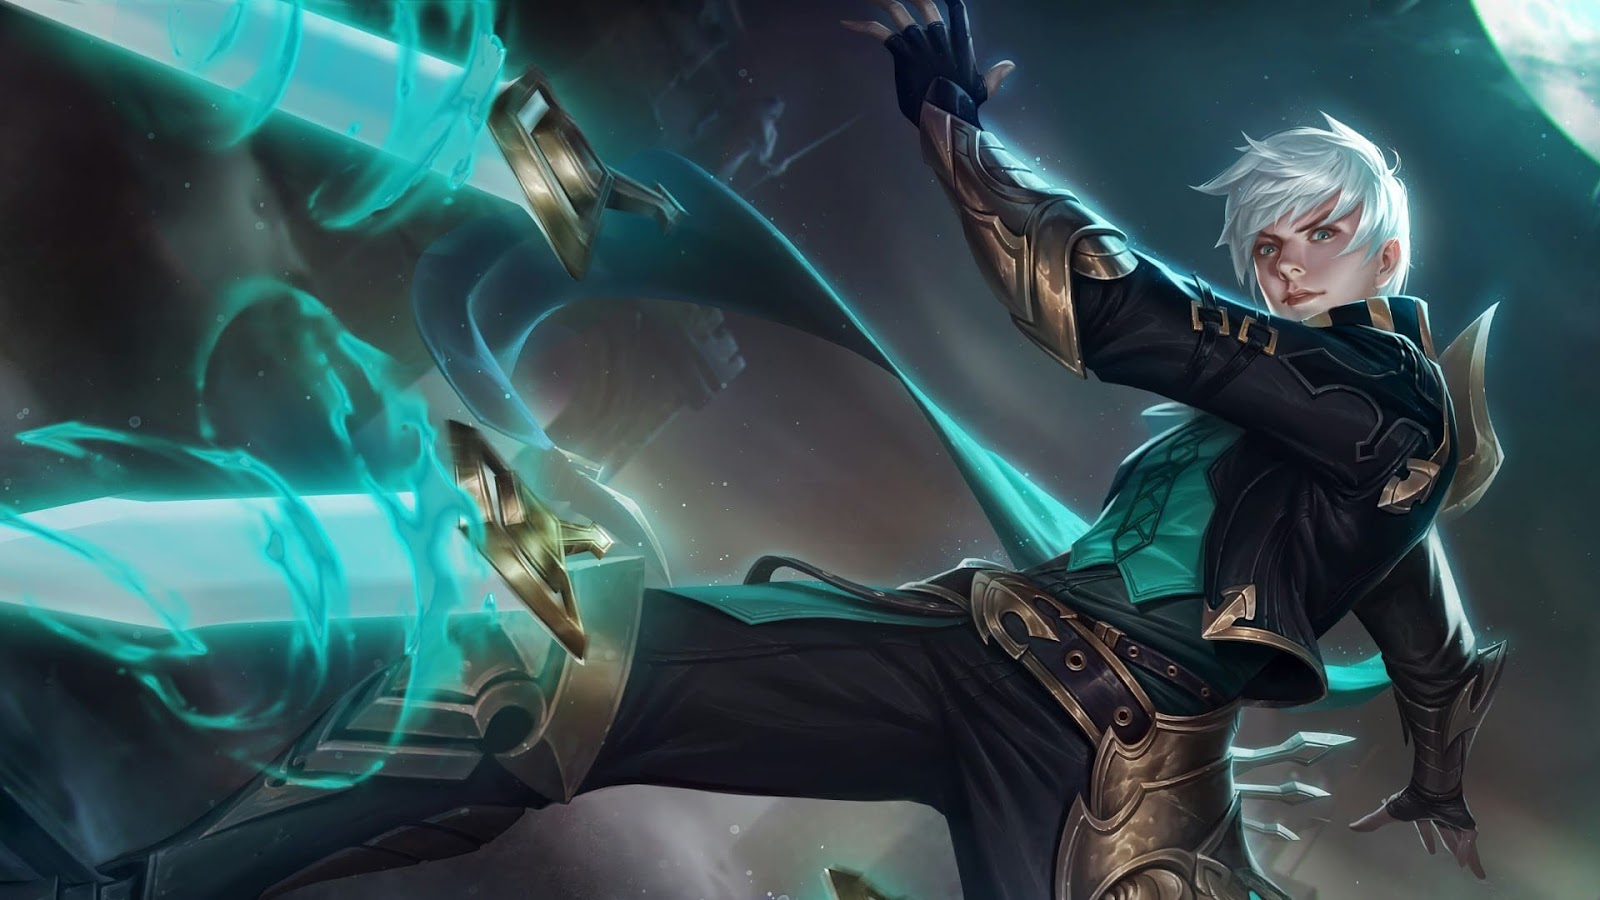 Wallpaper Gusion Moonlight Sonata Skin Mobile Legends HD for PC